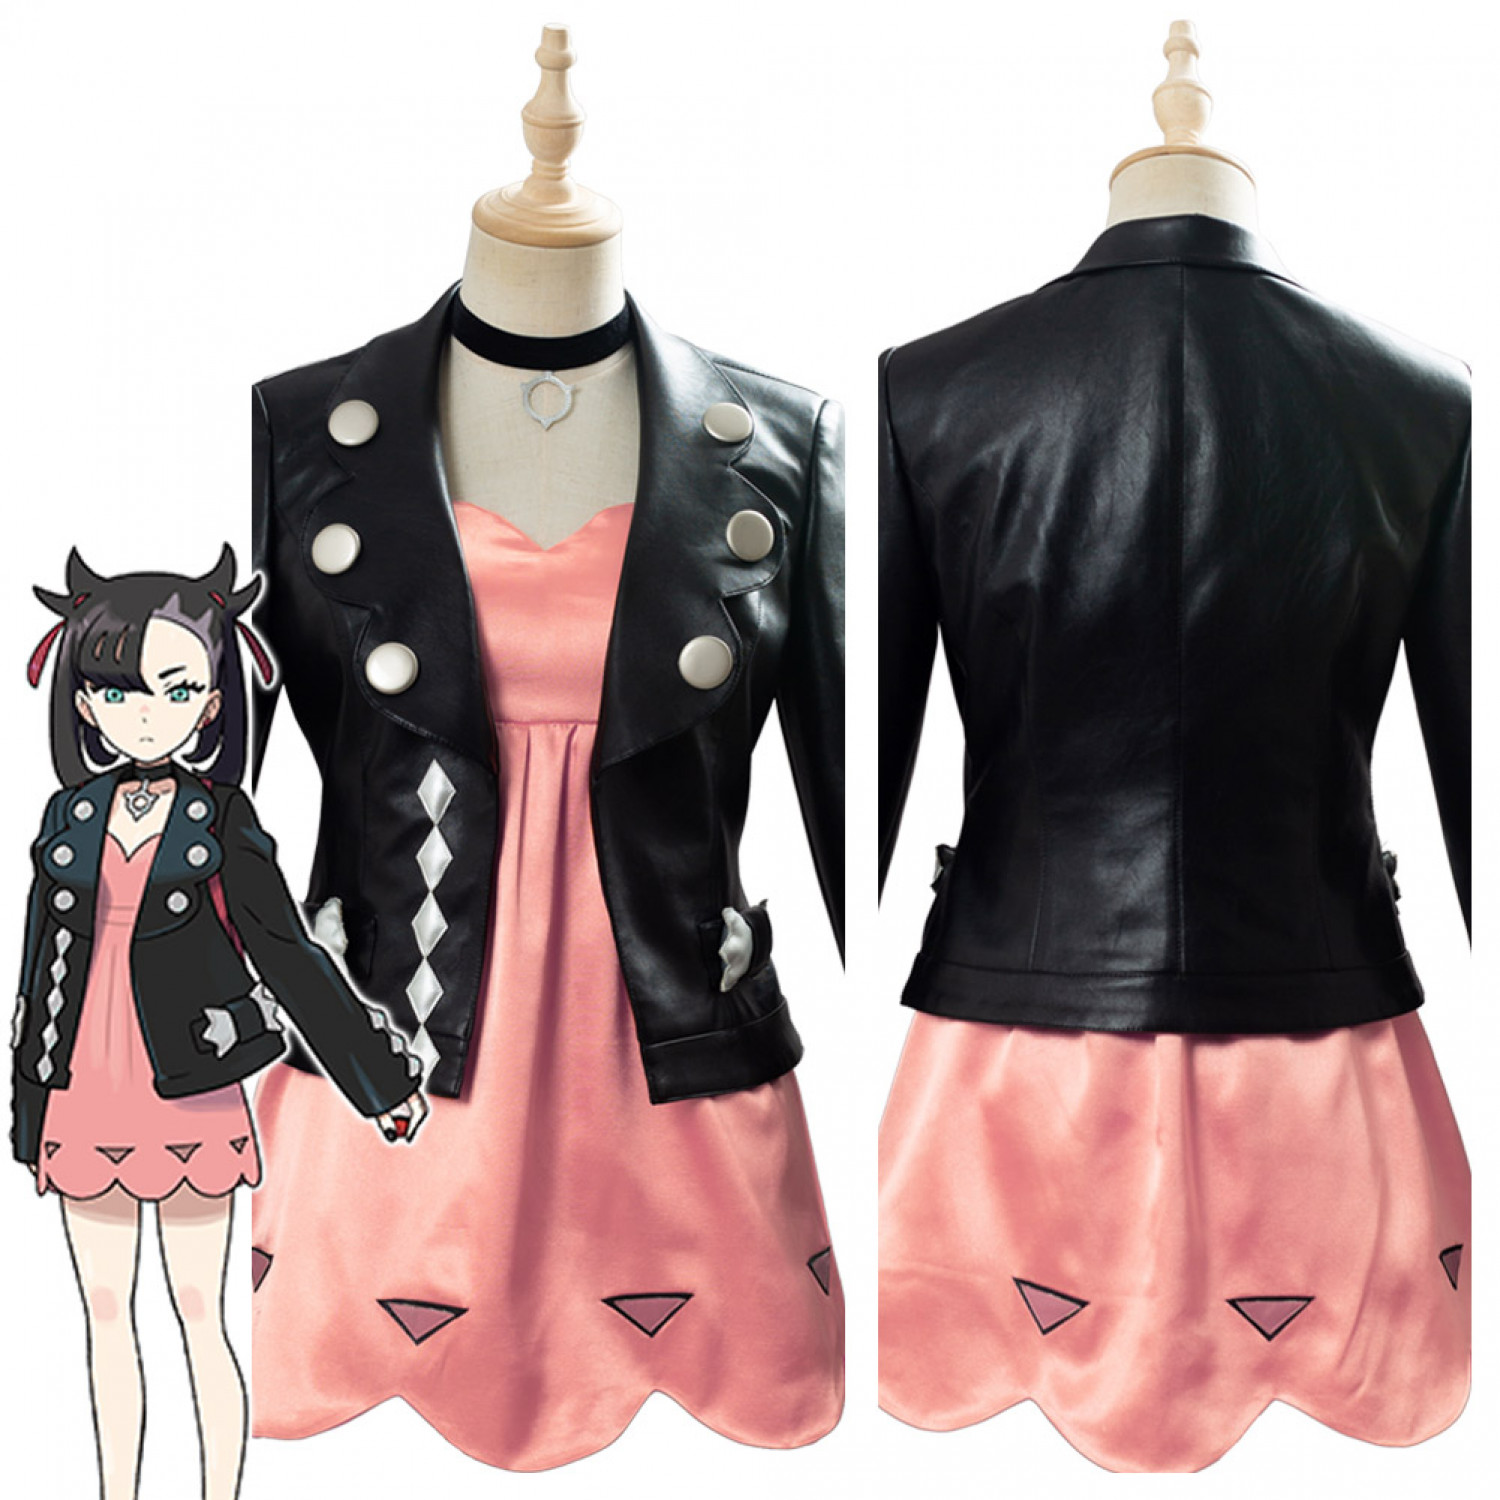 2020 Pokemon Sword Shield Marnie Cosplay Costume Dress